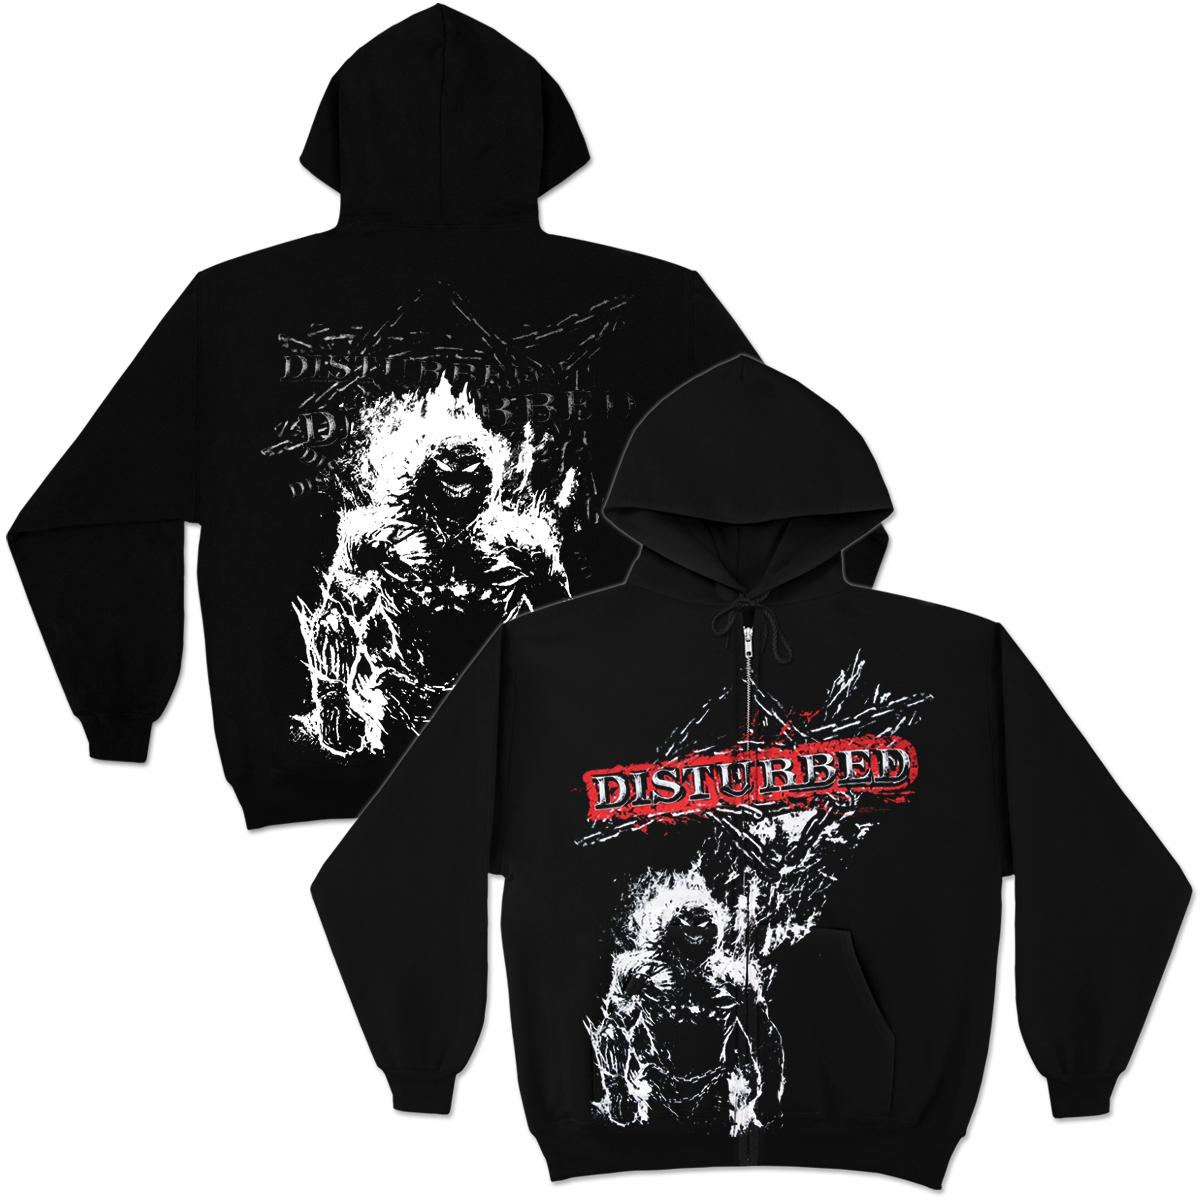 Disturbed   Outerwear   Disturbed Chain Scramble Zip Hoodie